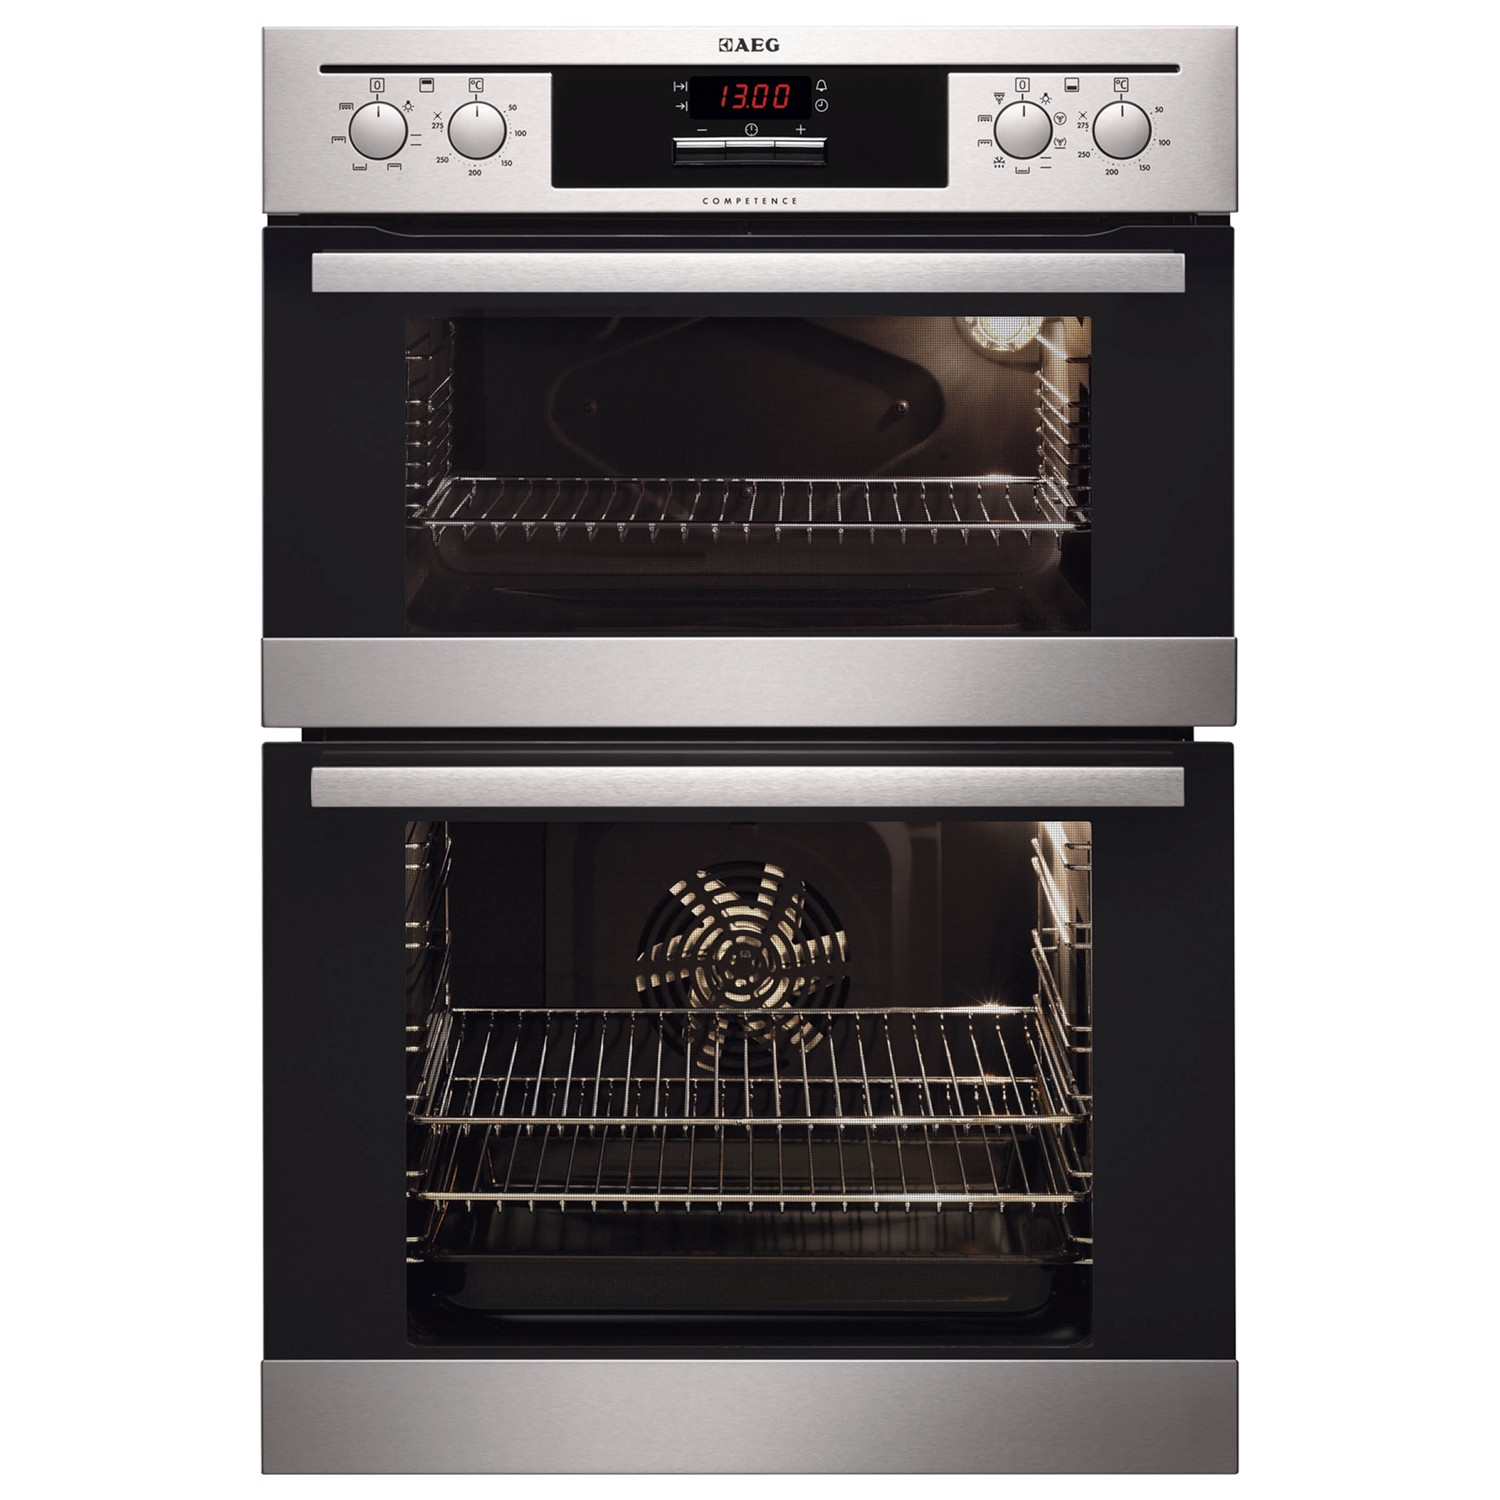 AEG DC4013021M Electric Built-In Double Oven